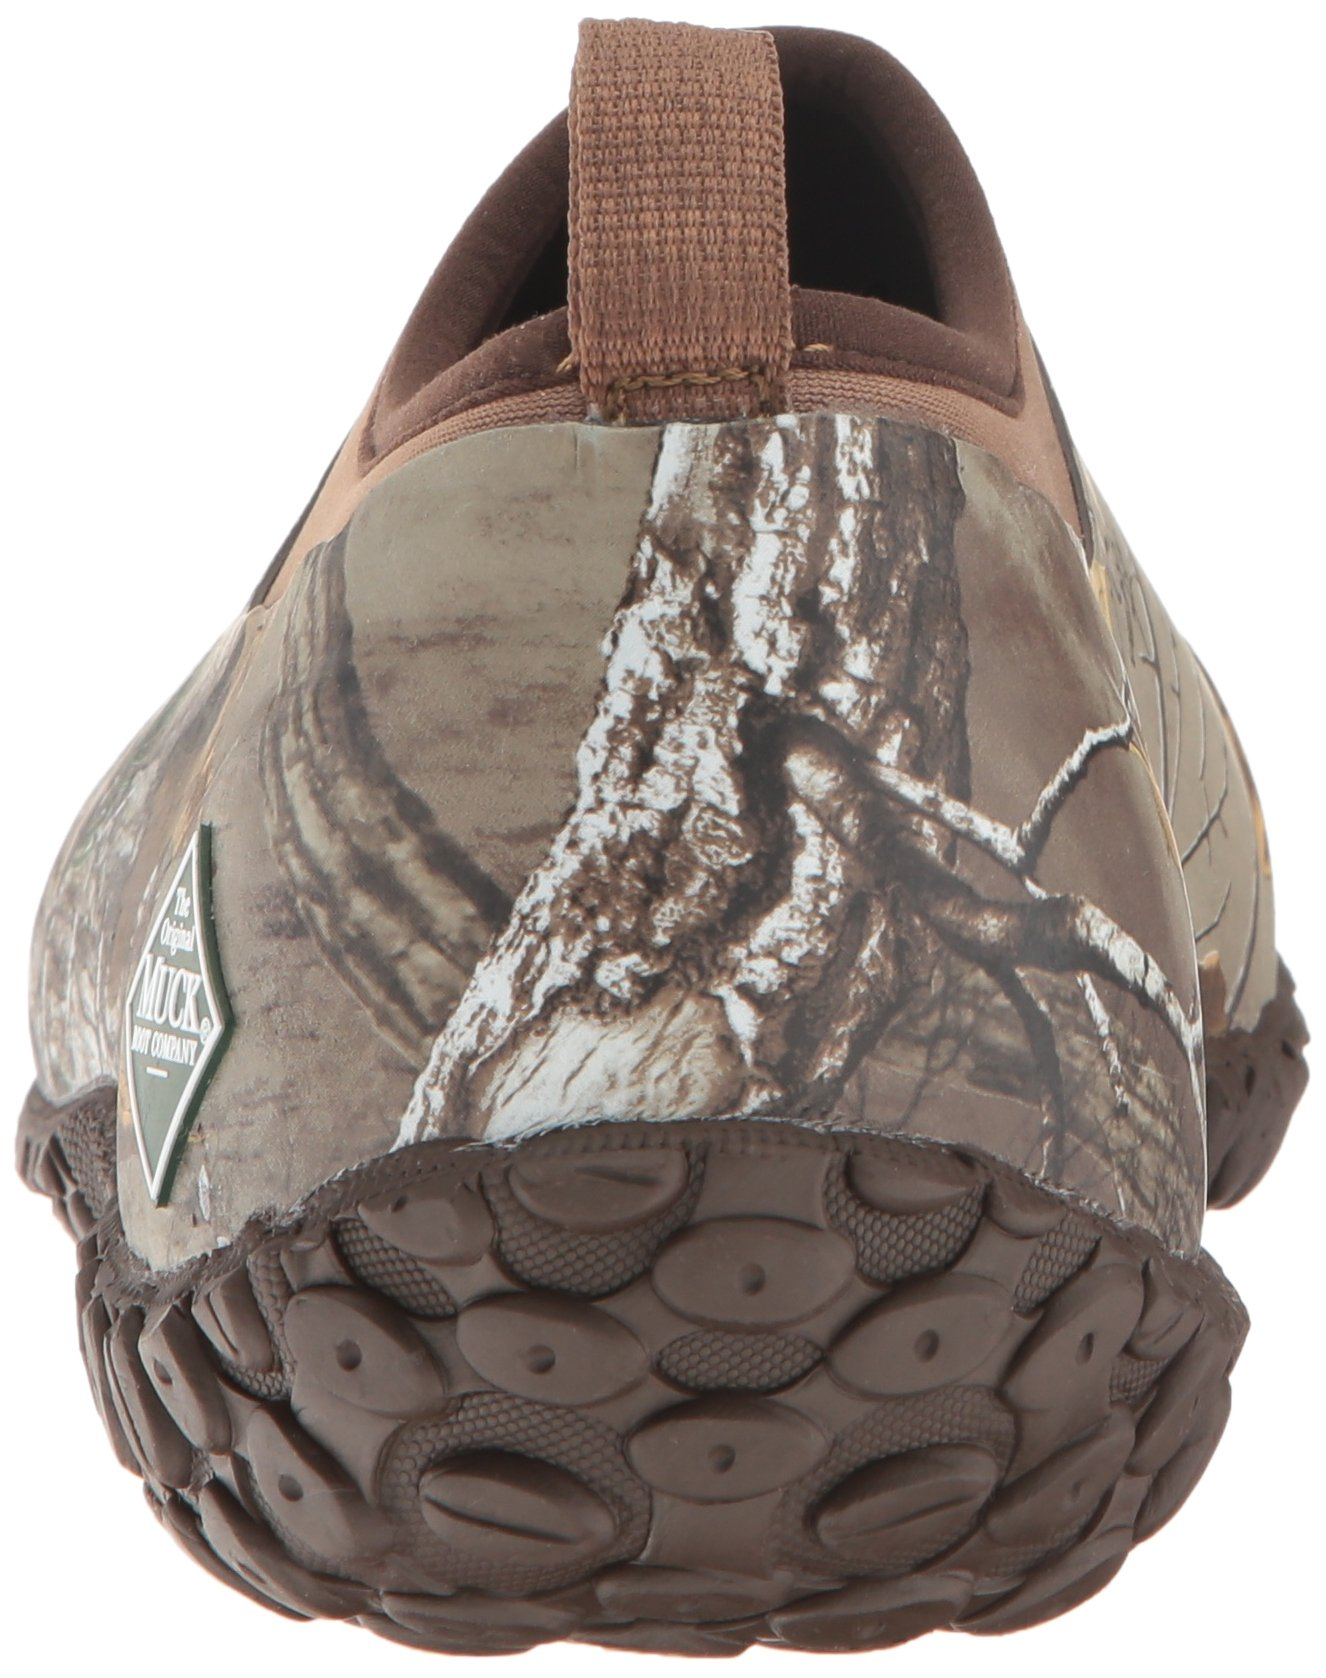 Muckster ll Men's Rubber Garden Shoes,Realtree XTRA,7 US/7-7.5 M US by Muck Boot (Image #2)